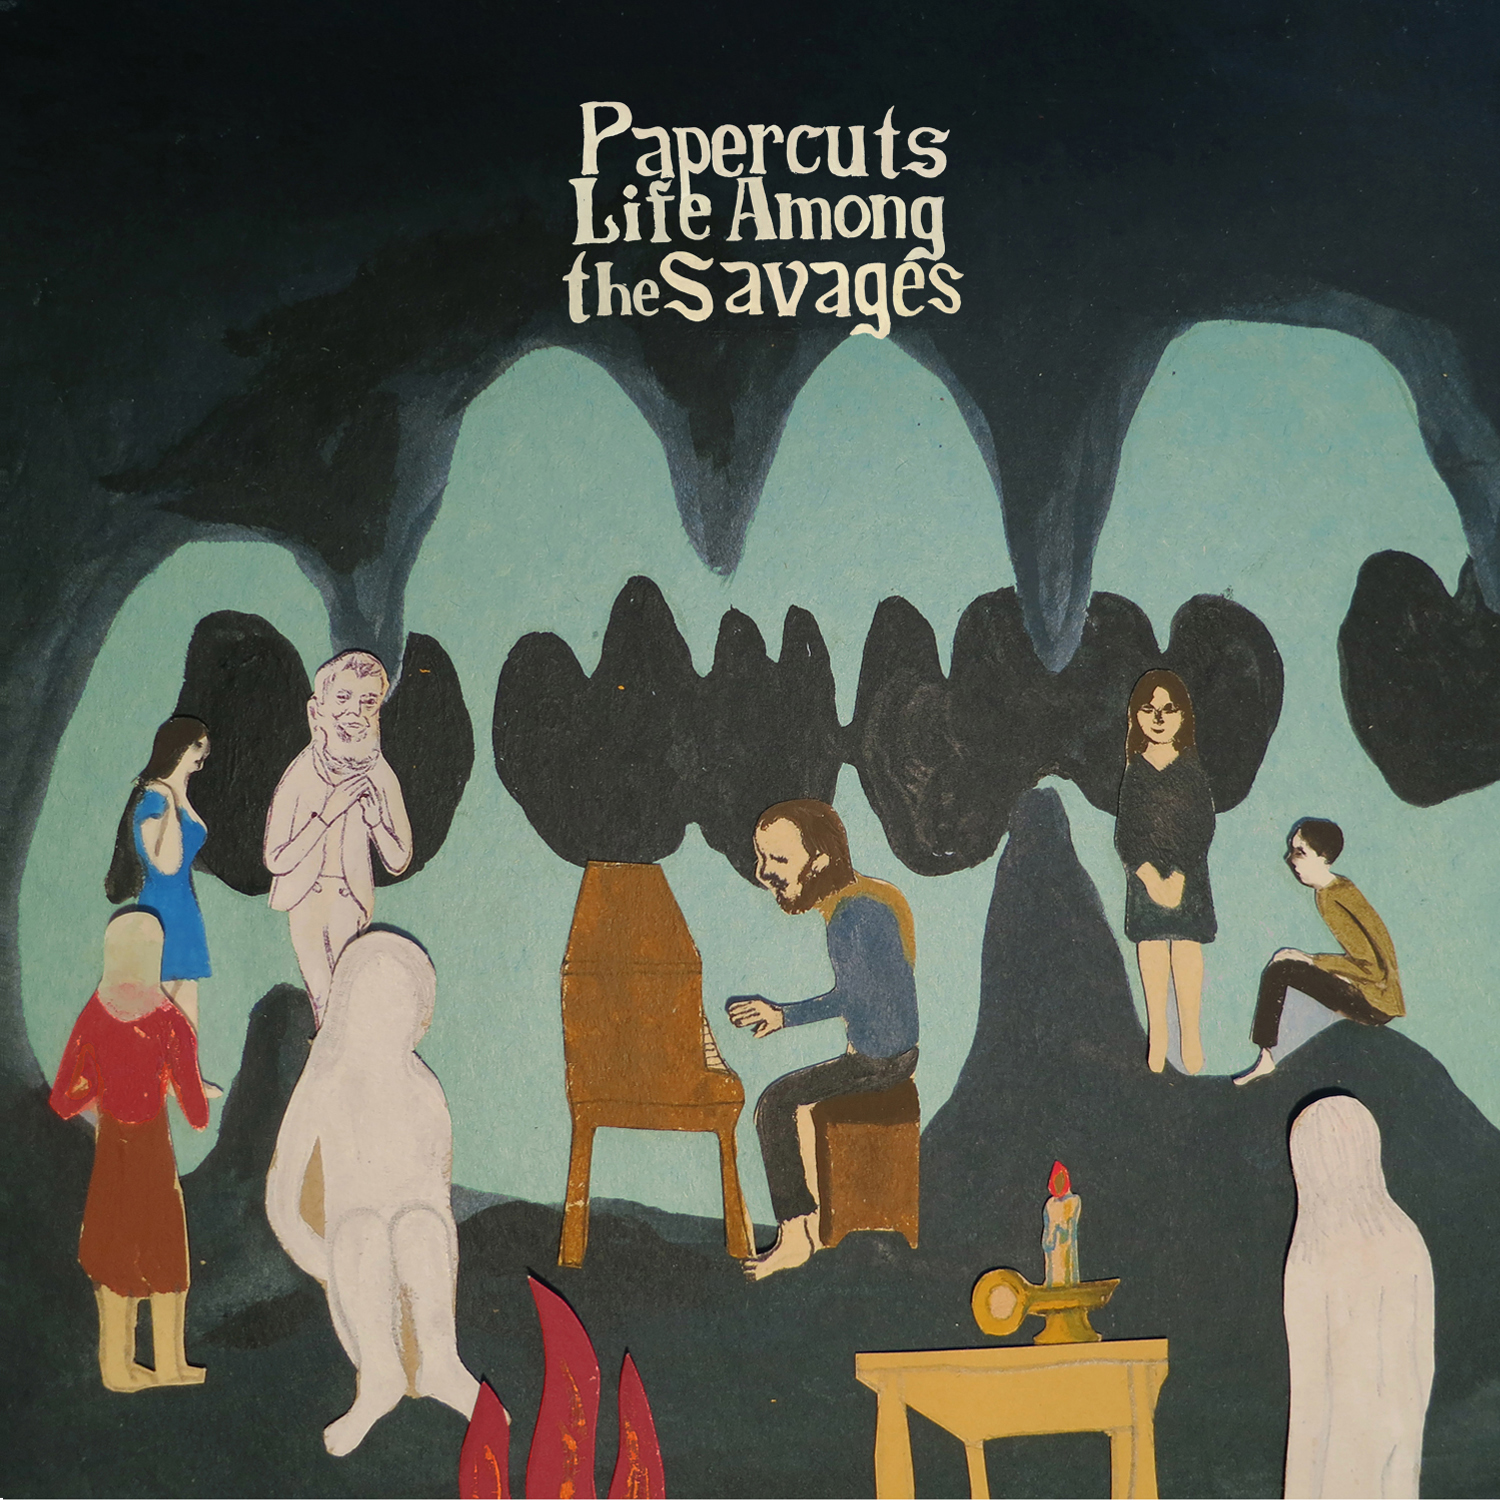 """Papercuts - Life Among the Savages 12"""" LP - Easy Sound Recording Company"""